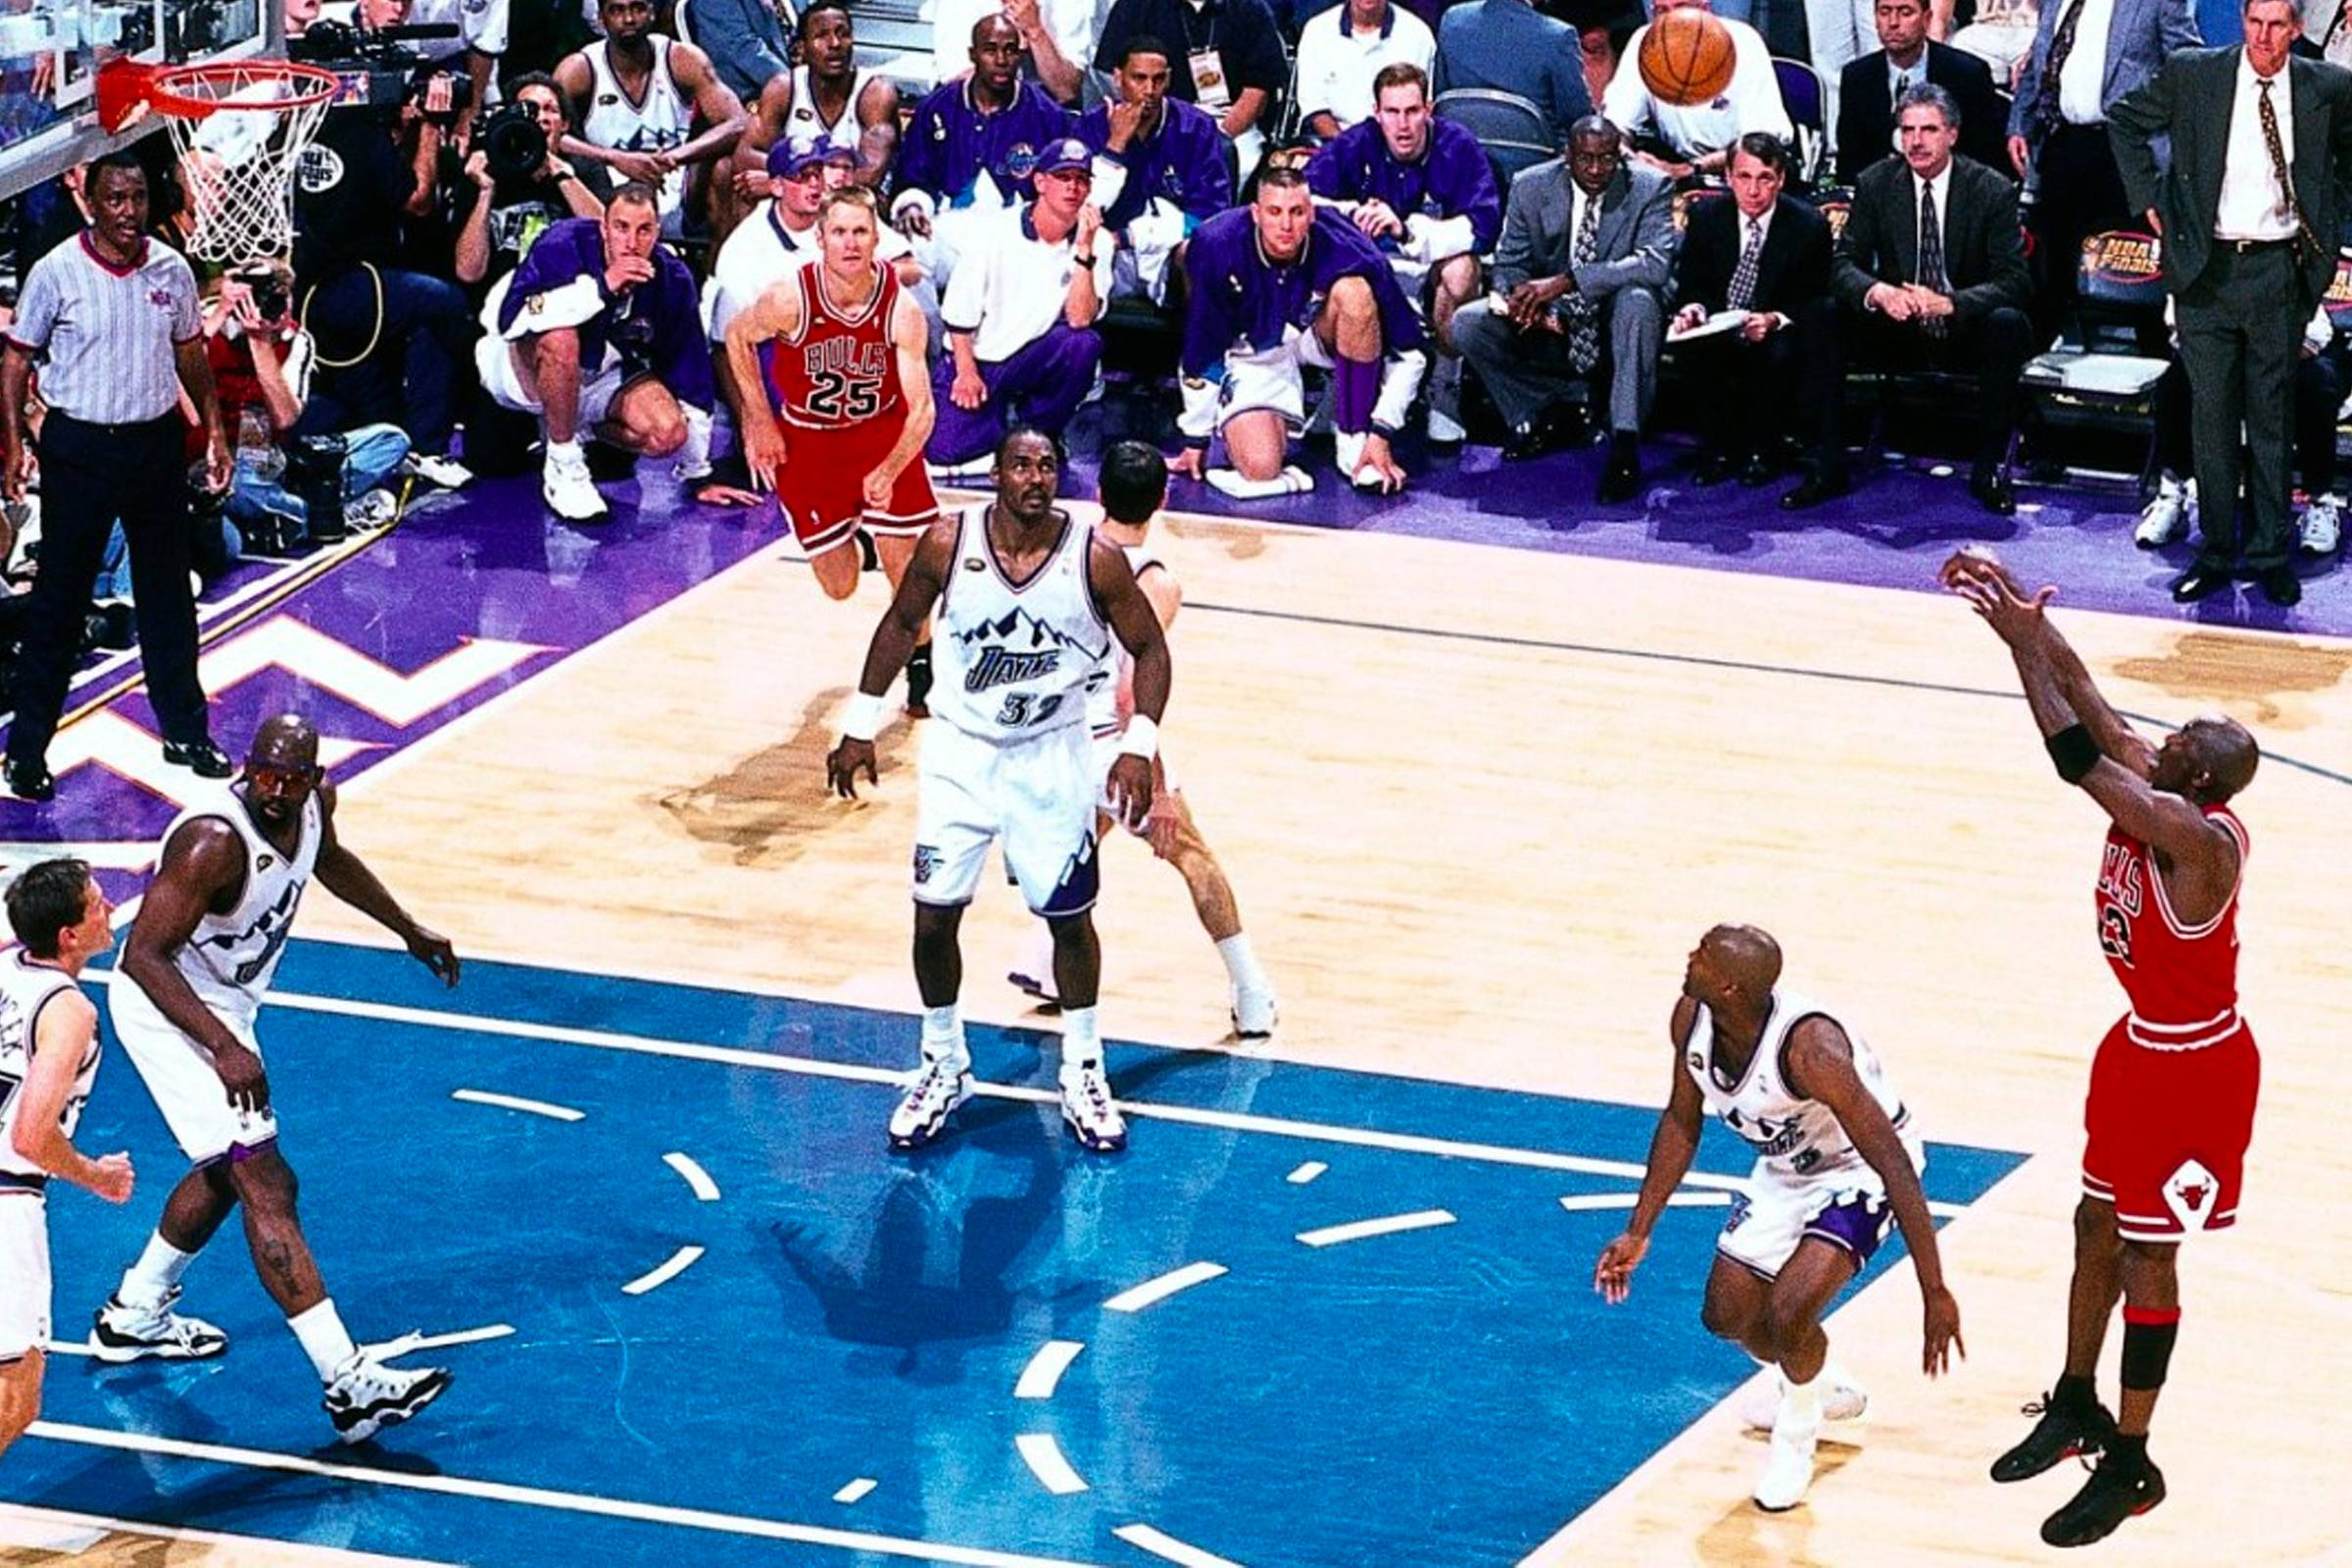 1998 NBA Finals, Game 6